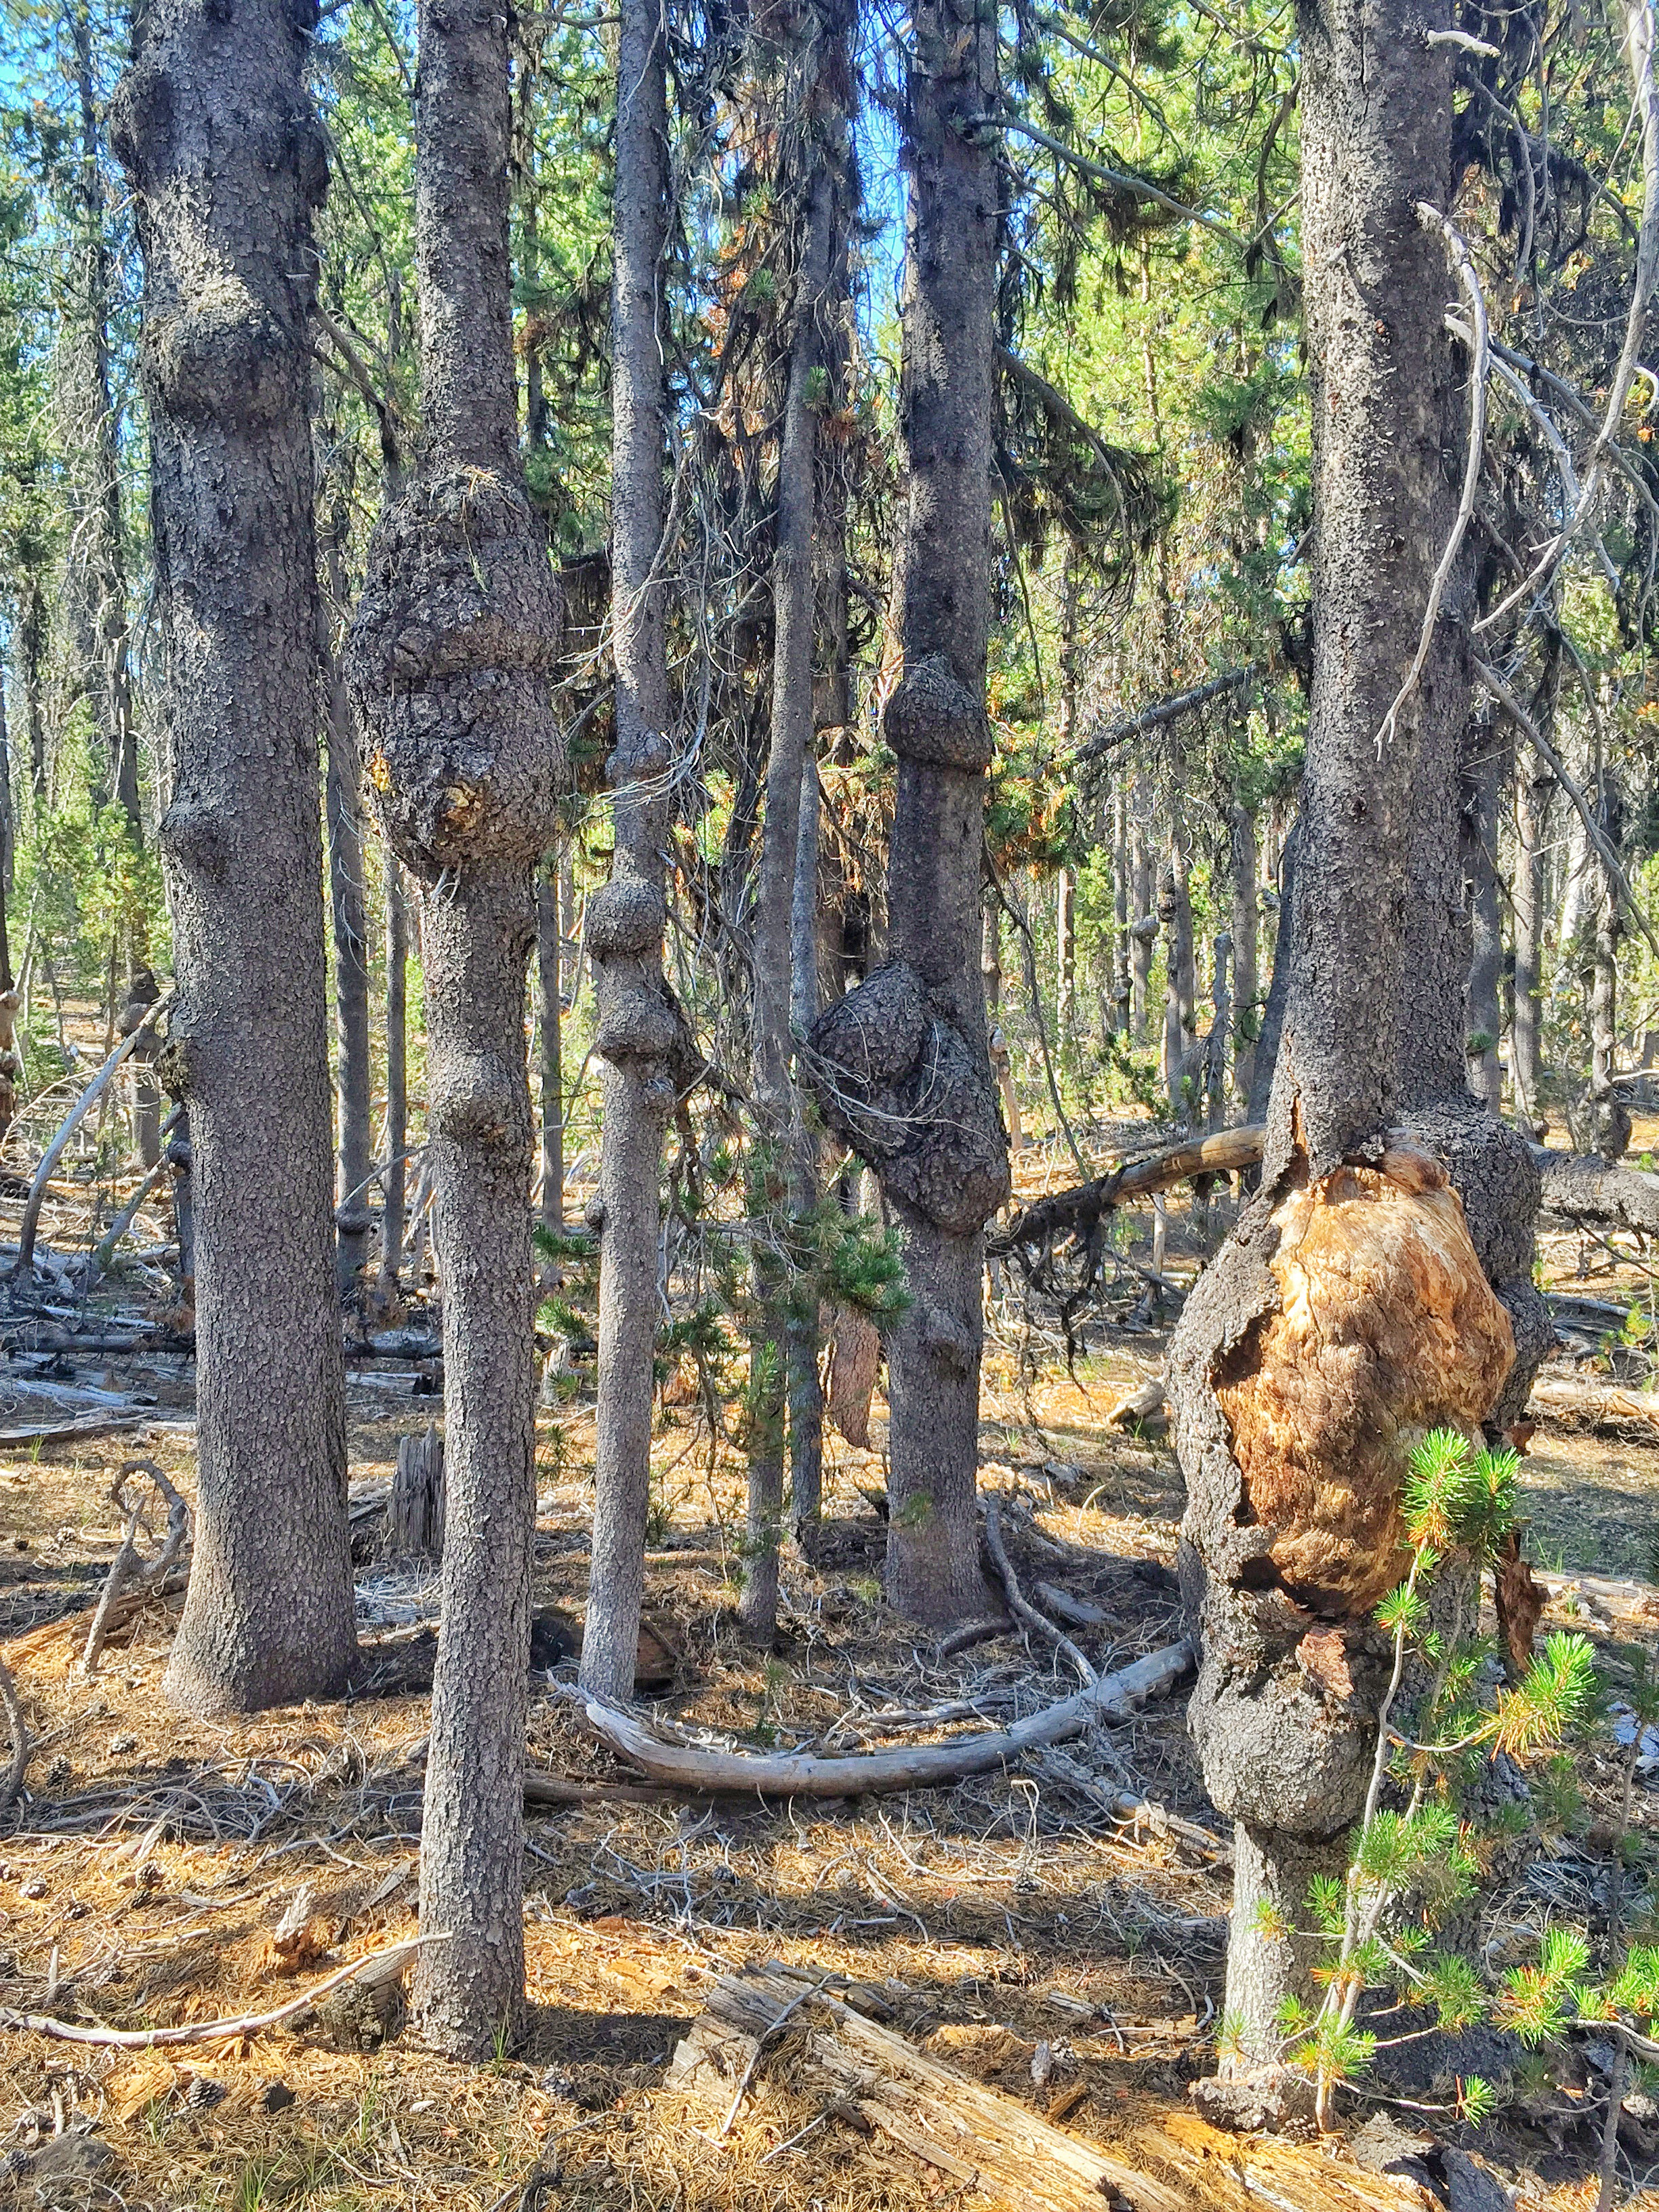 Diseased lodgepole pines in Crater Lake National Park